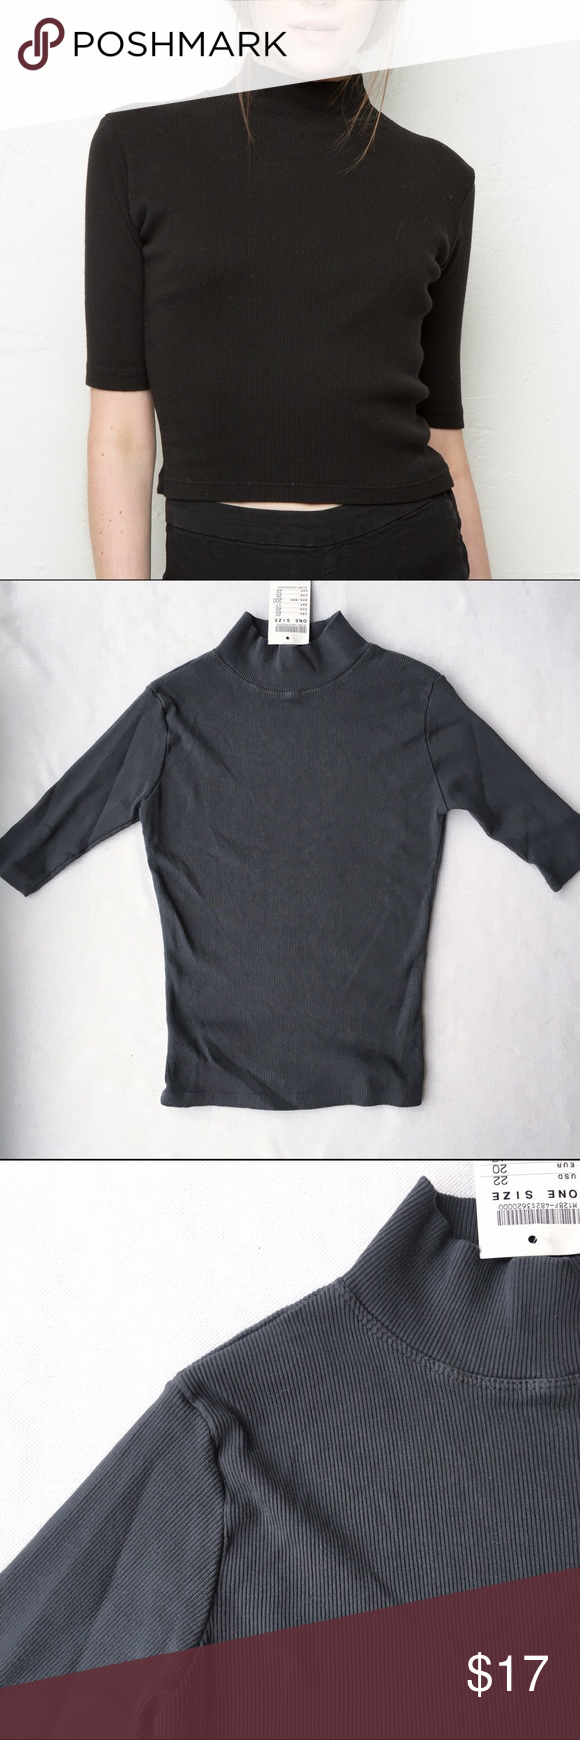 Camia Turtleneck Top Charcoal grey camia turtleneck top Nwt Brandy Melville Tops Tees - Long Sleeve